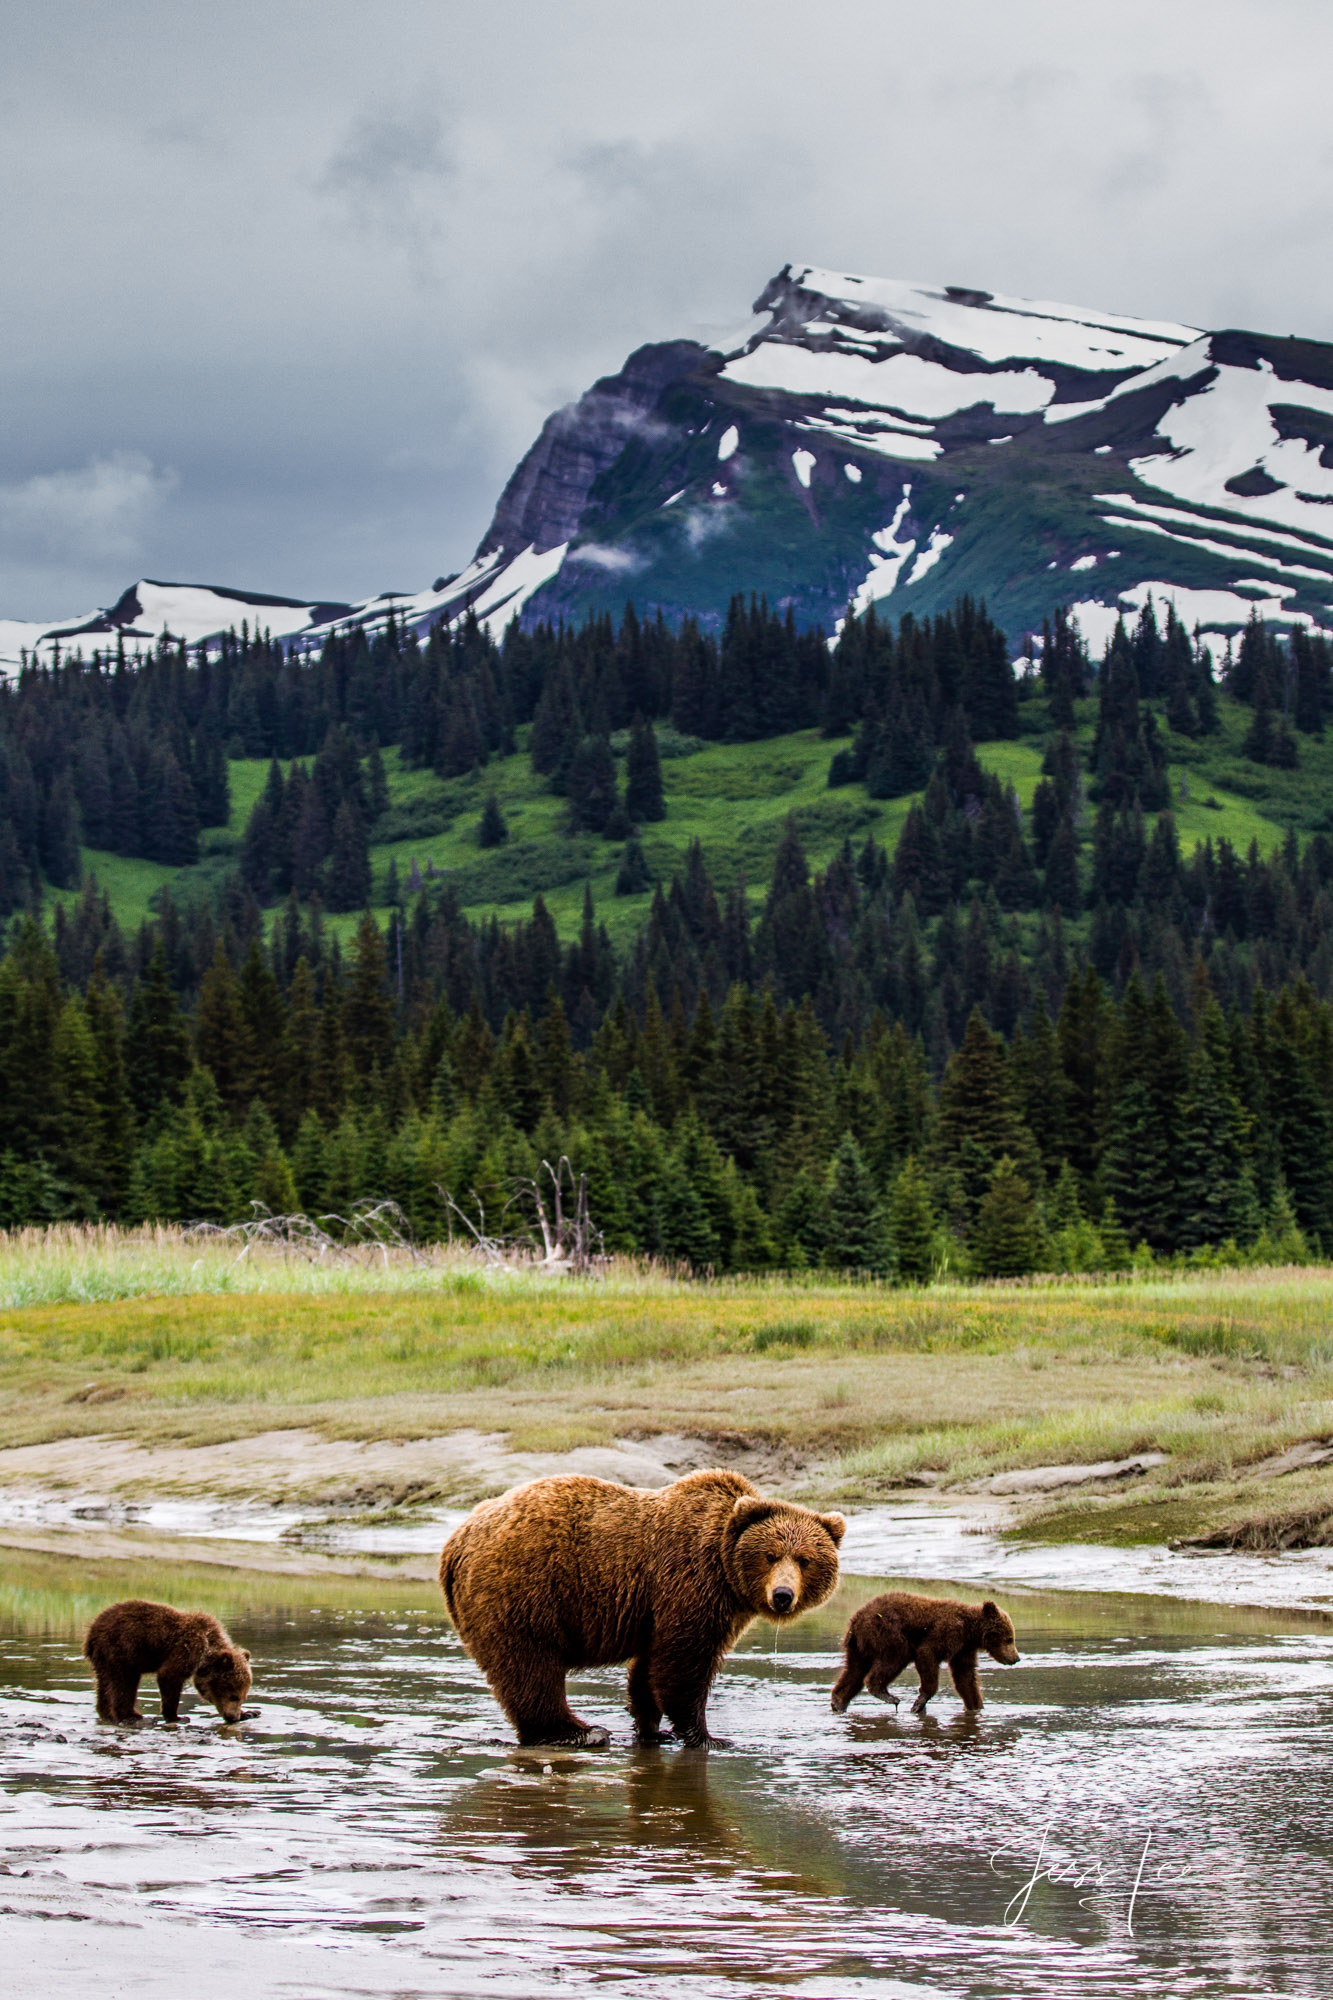 Alaska*, bear*, brown bear*, brown bears*, brown*, coastal*, cubs*, grizzlies*, Grizzly*, Jess Lee*, Cooke inlet, legendary photographer*, national park*, sow*, wildlife*, wildlife photographer*, Griz, photo